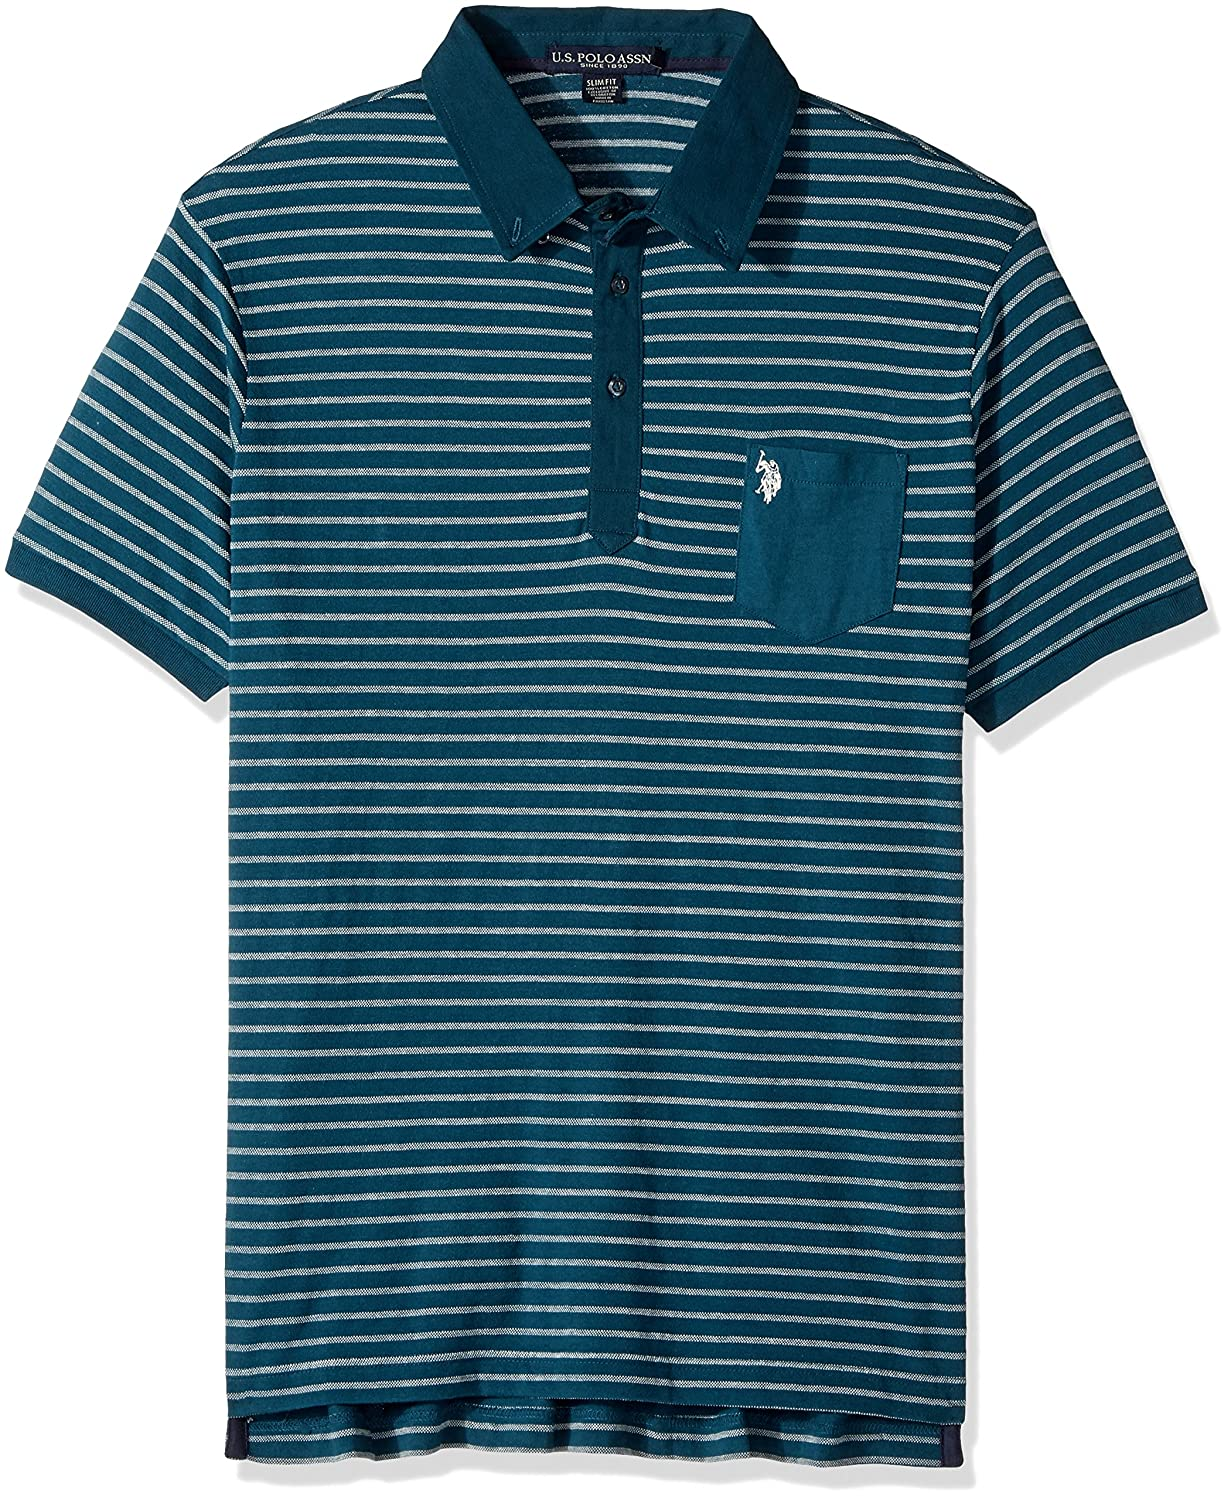 U.S. Polo Assn. Mens Standard Slim Fit Striped Short Sleeve Pique Polo Shirt